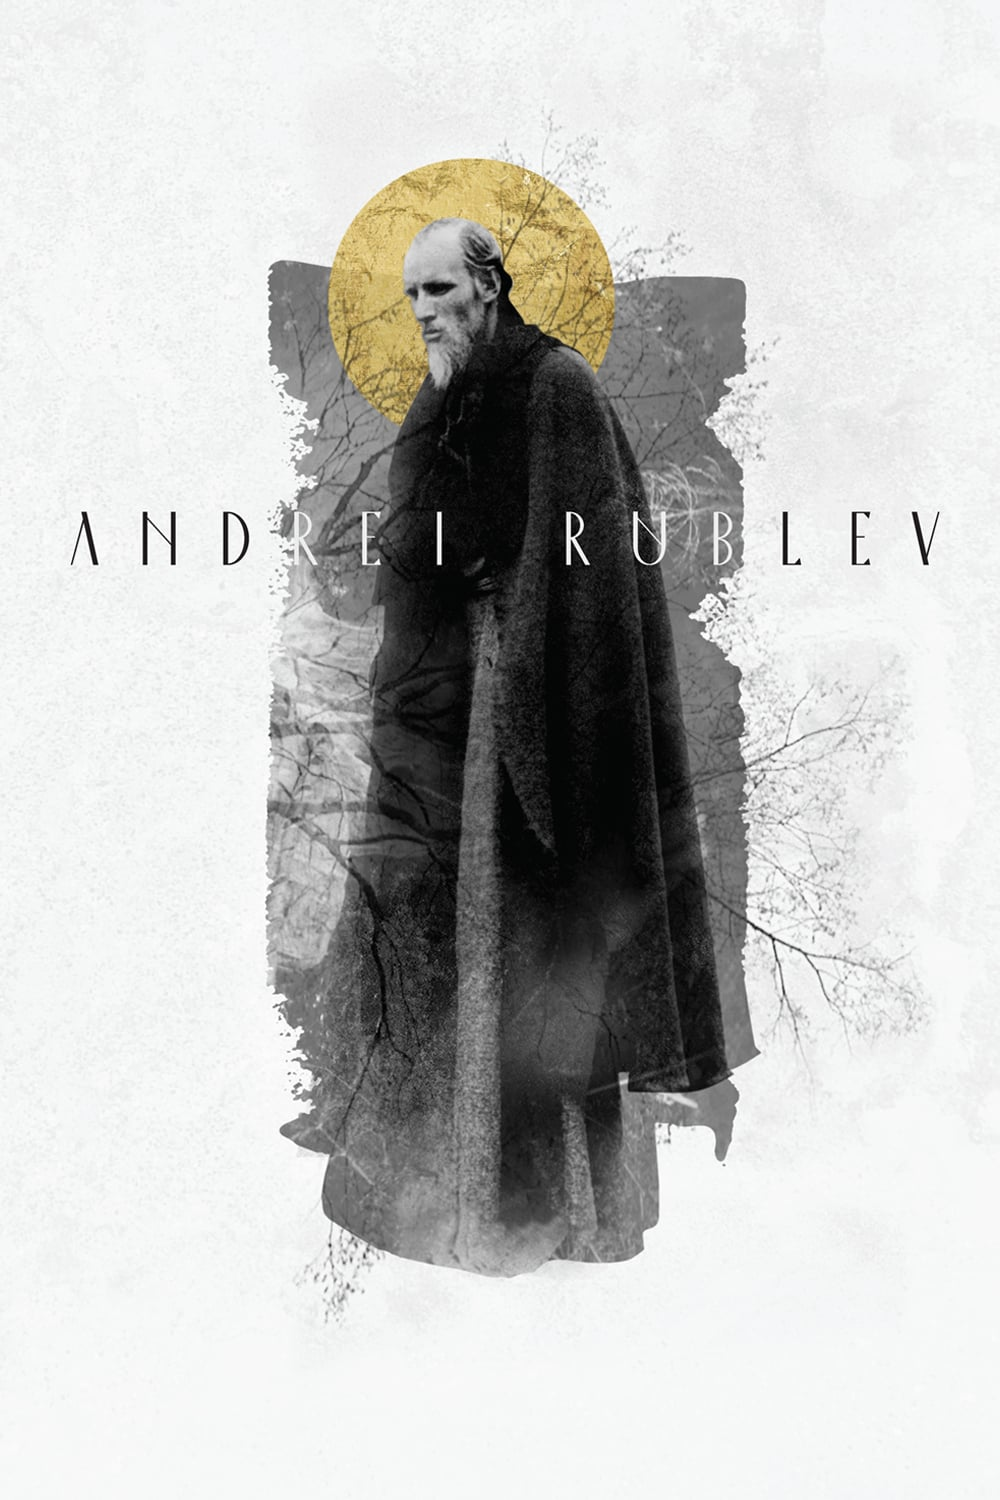 Poster for Andrei Rublev